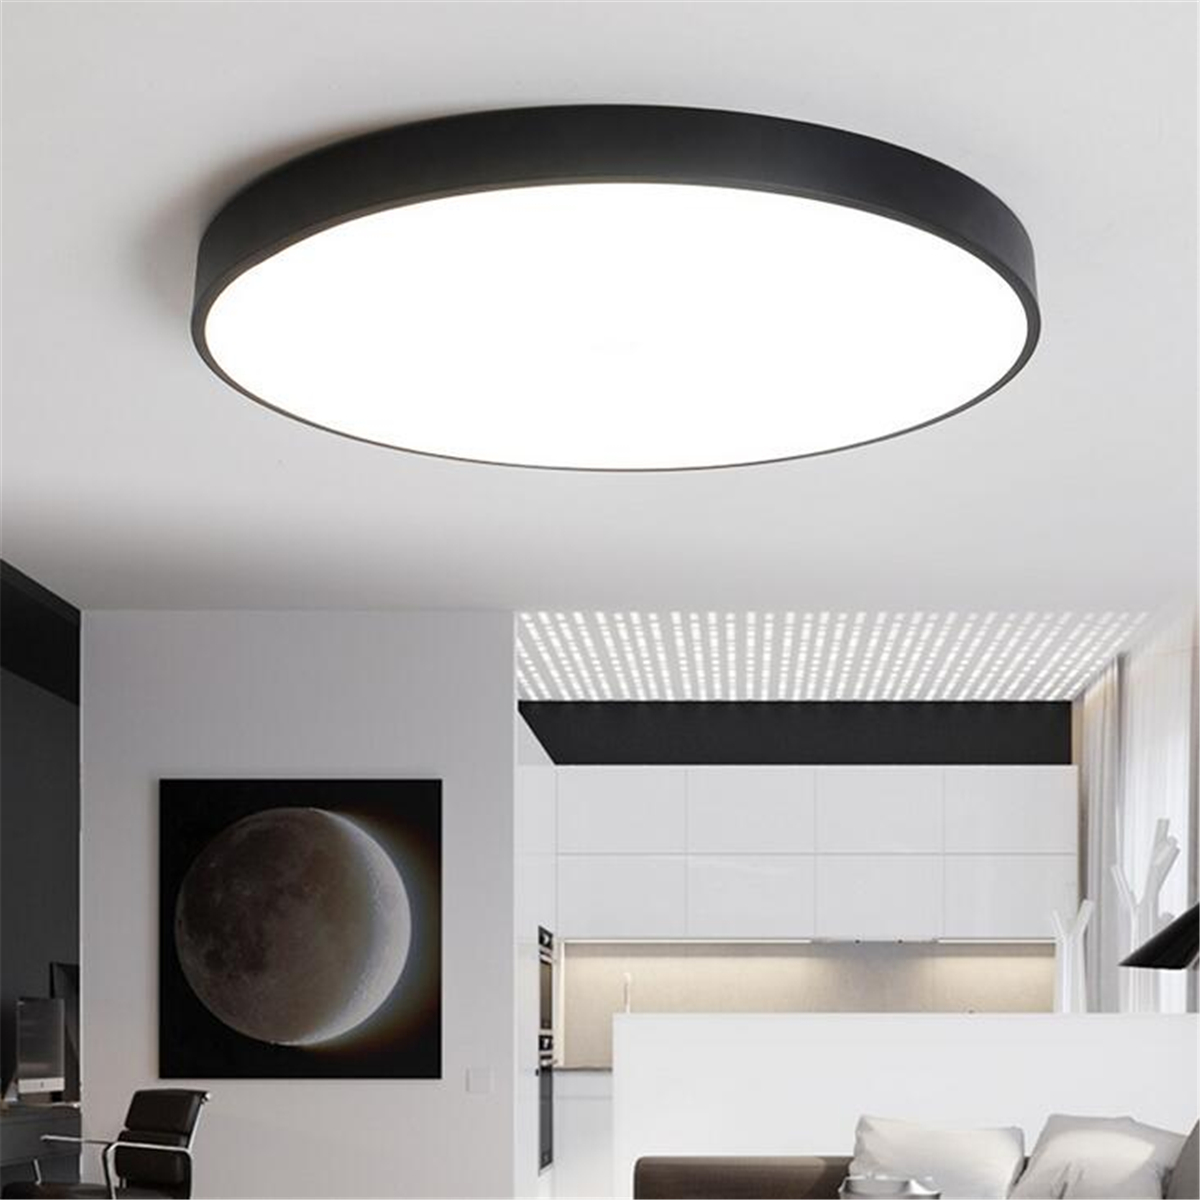 12/18/24W Round LED Ceiling Light Mount Fixture Lamp For